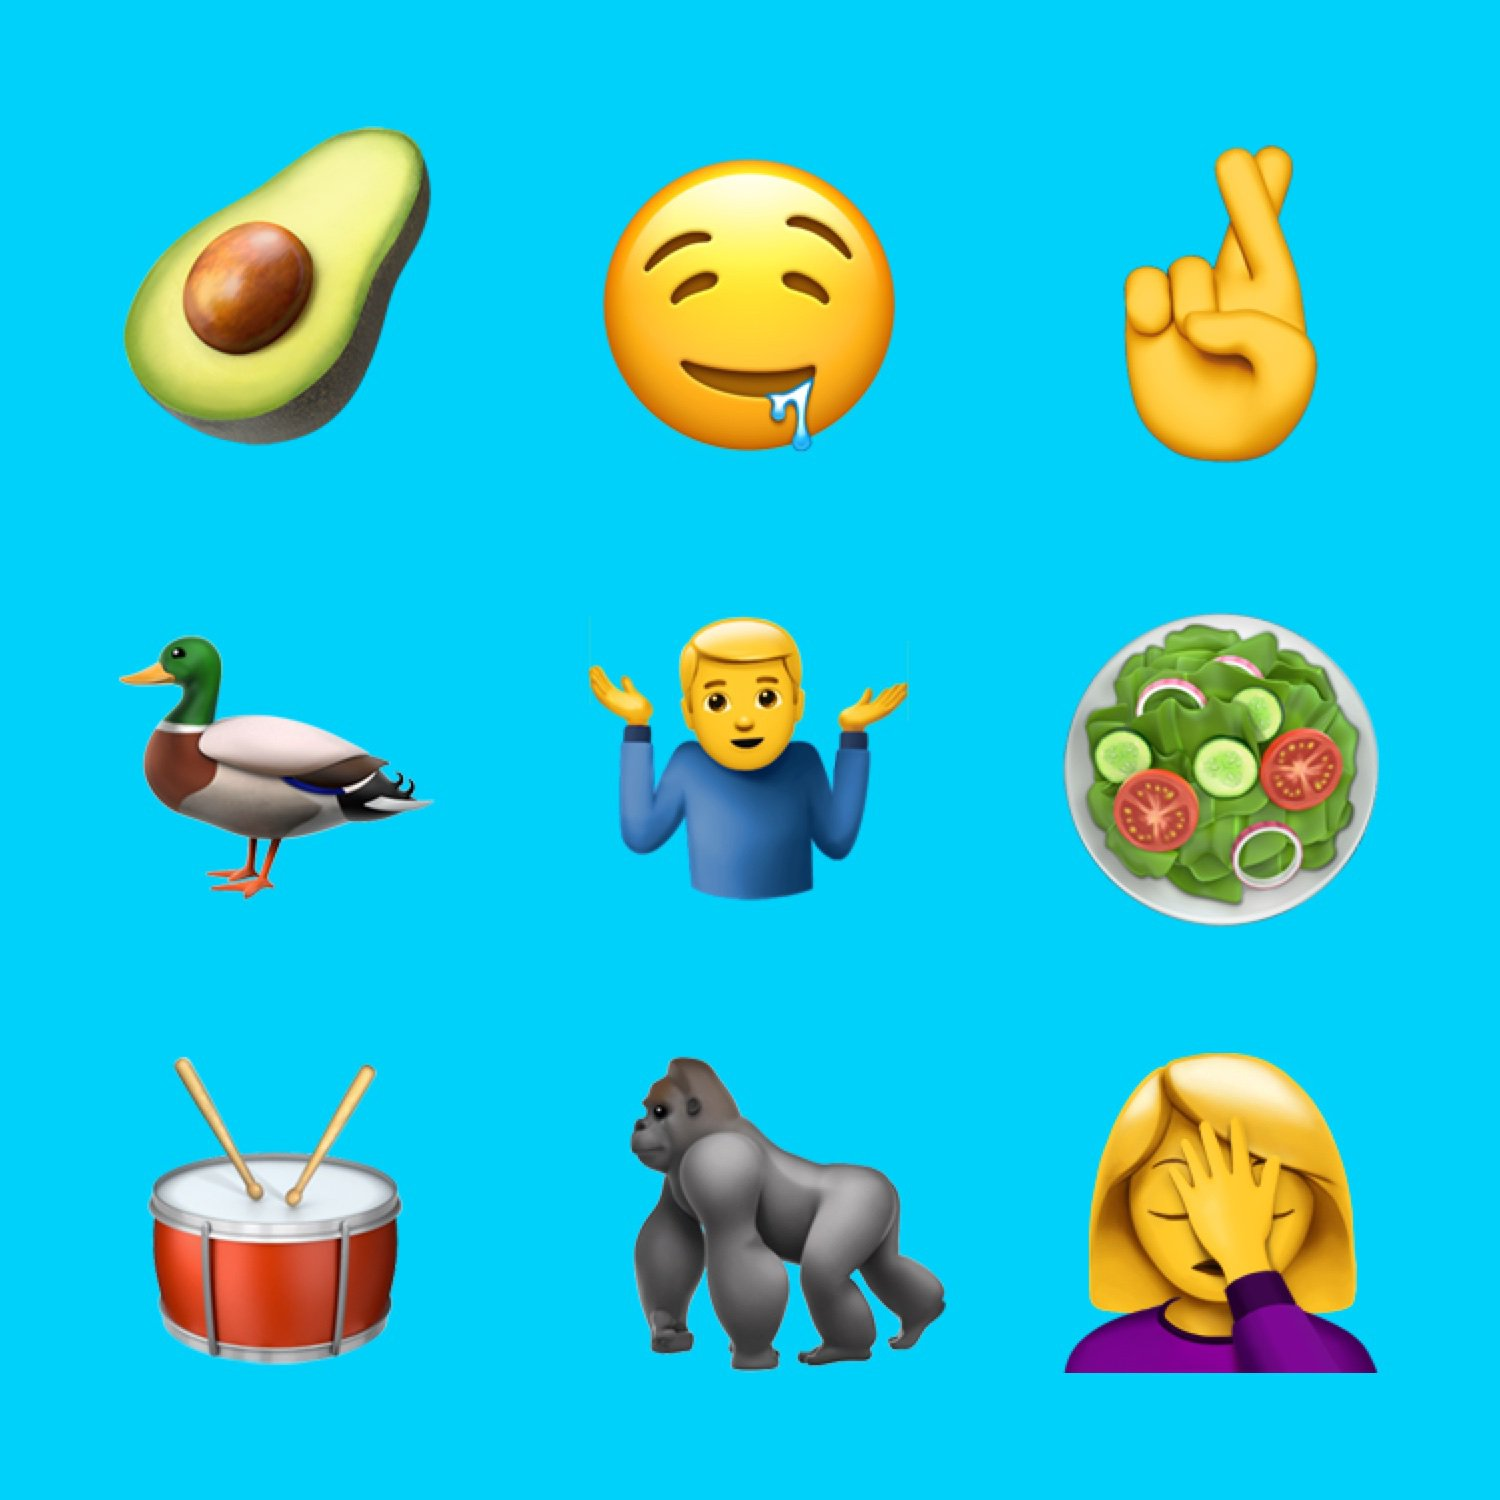 New Emojis We Need Now More Than Ever Include Facepalm And